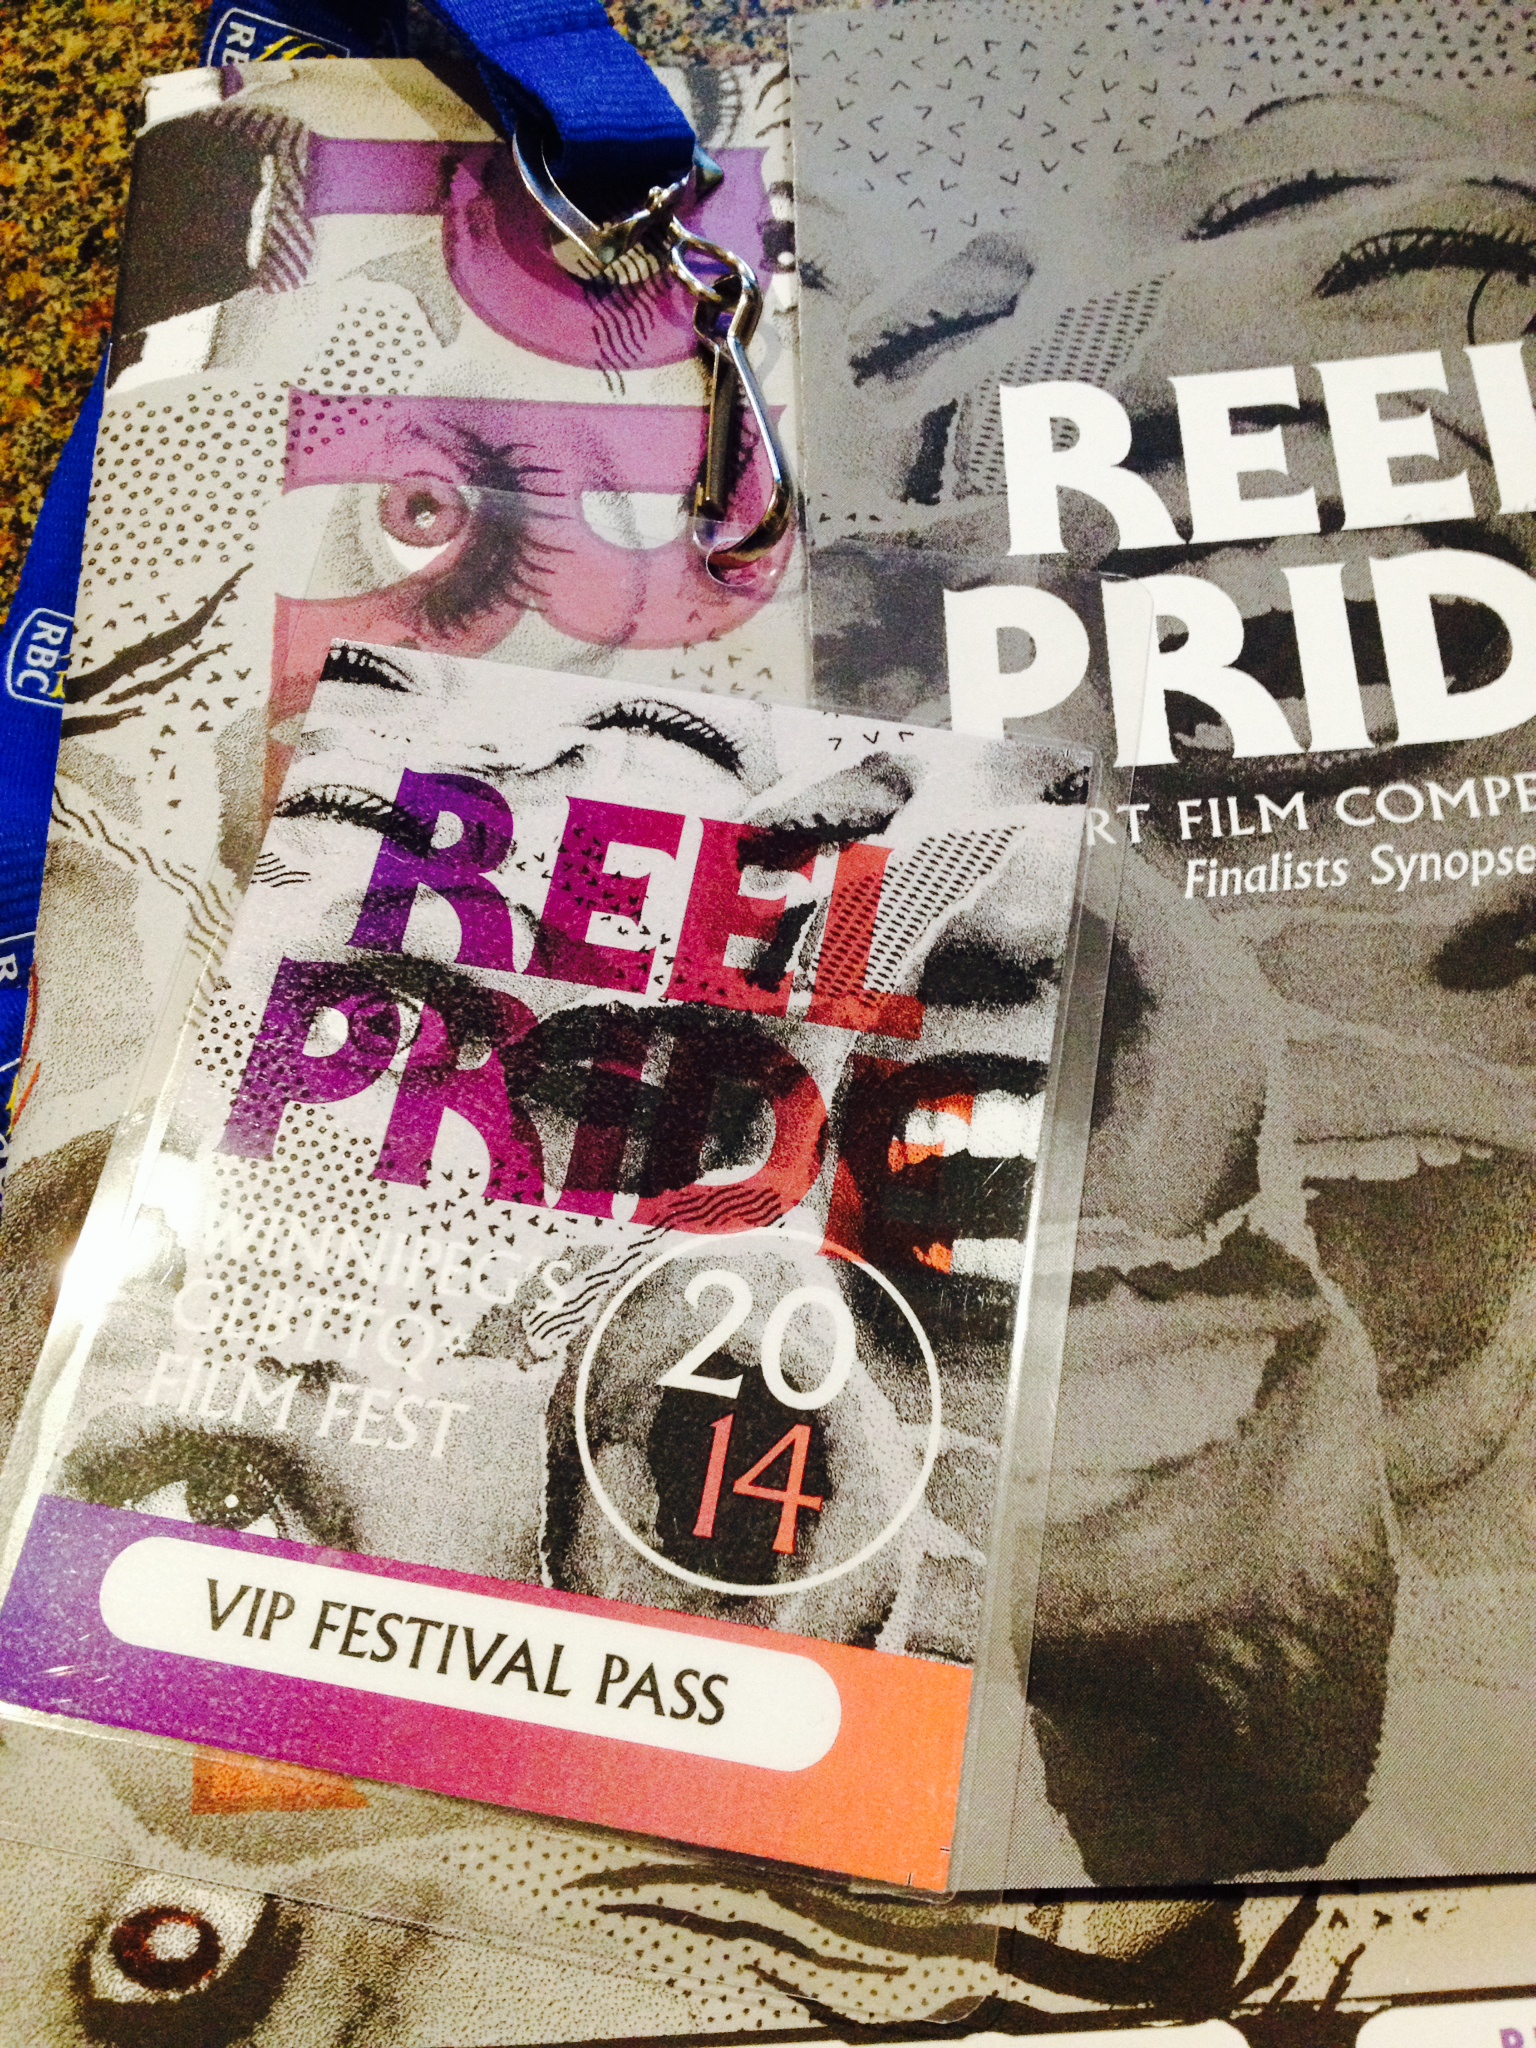 BLOG: Reel Pride